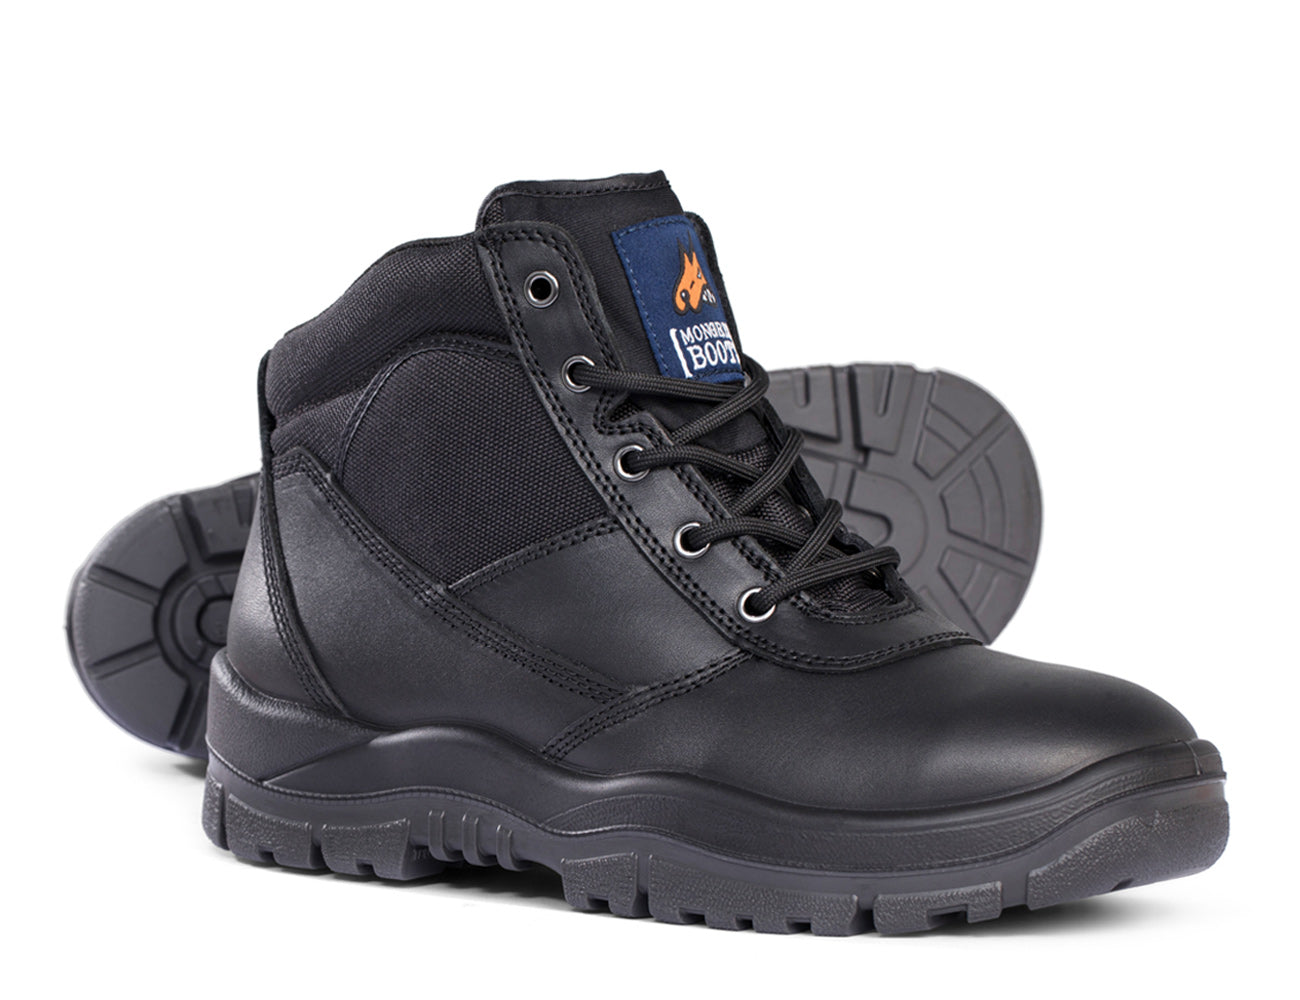 Mongrel Lace Up Safety Boots - 260020